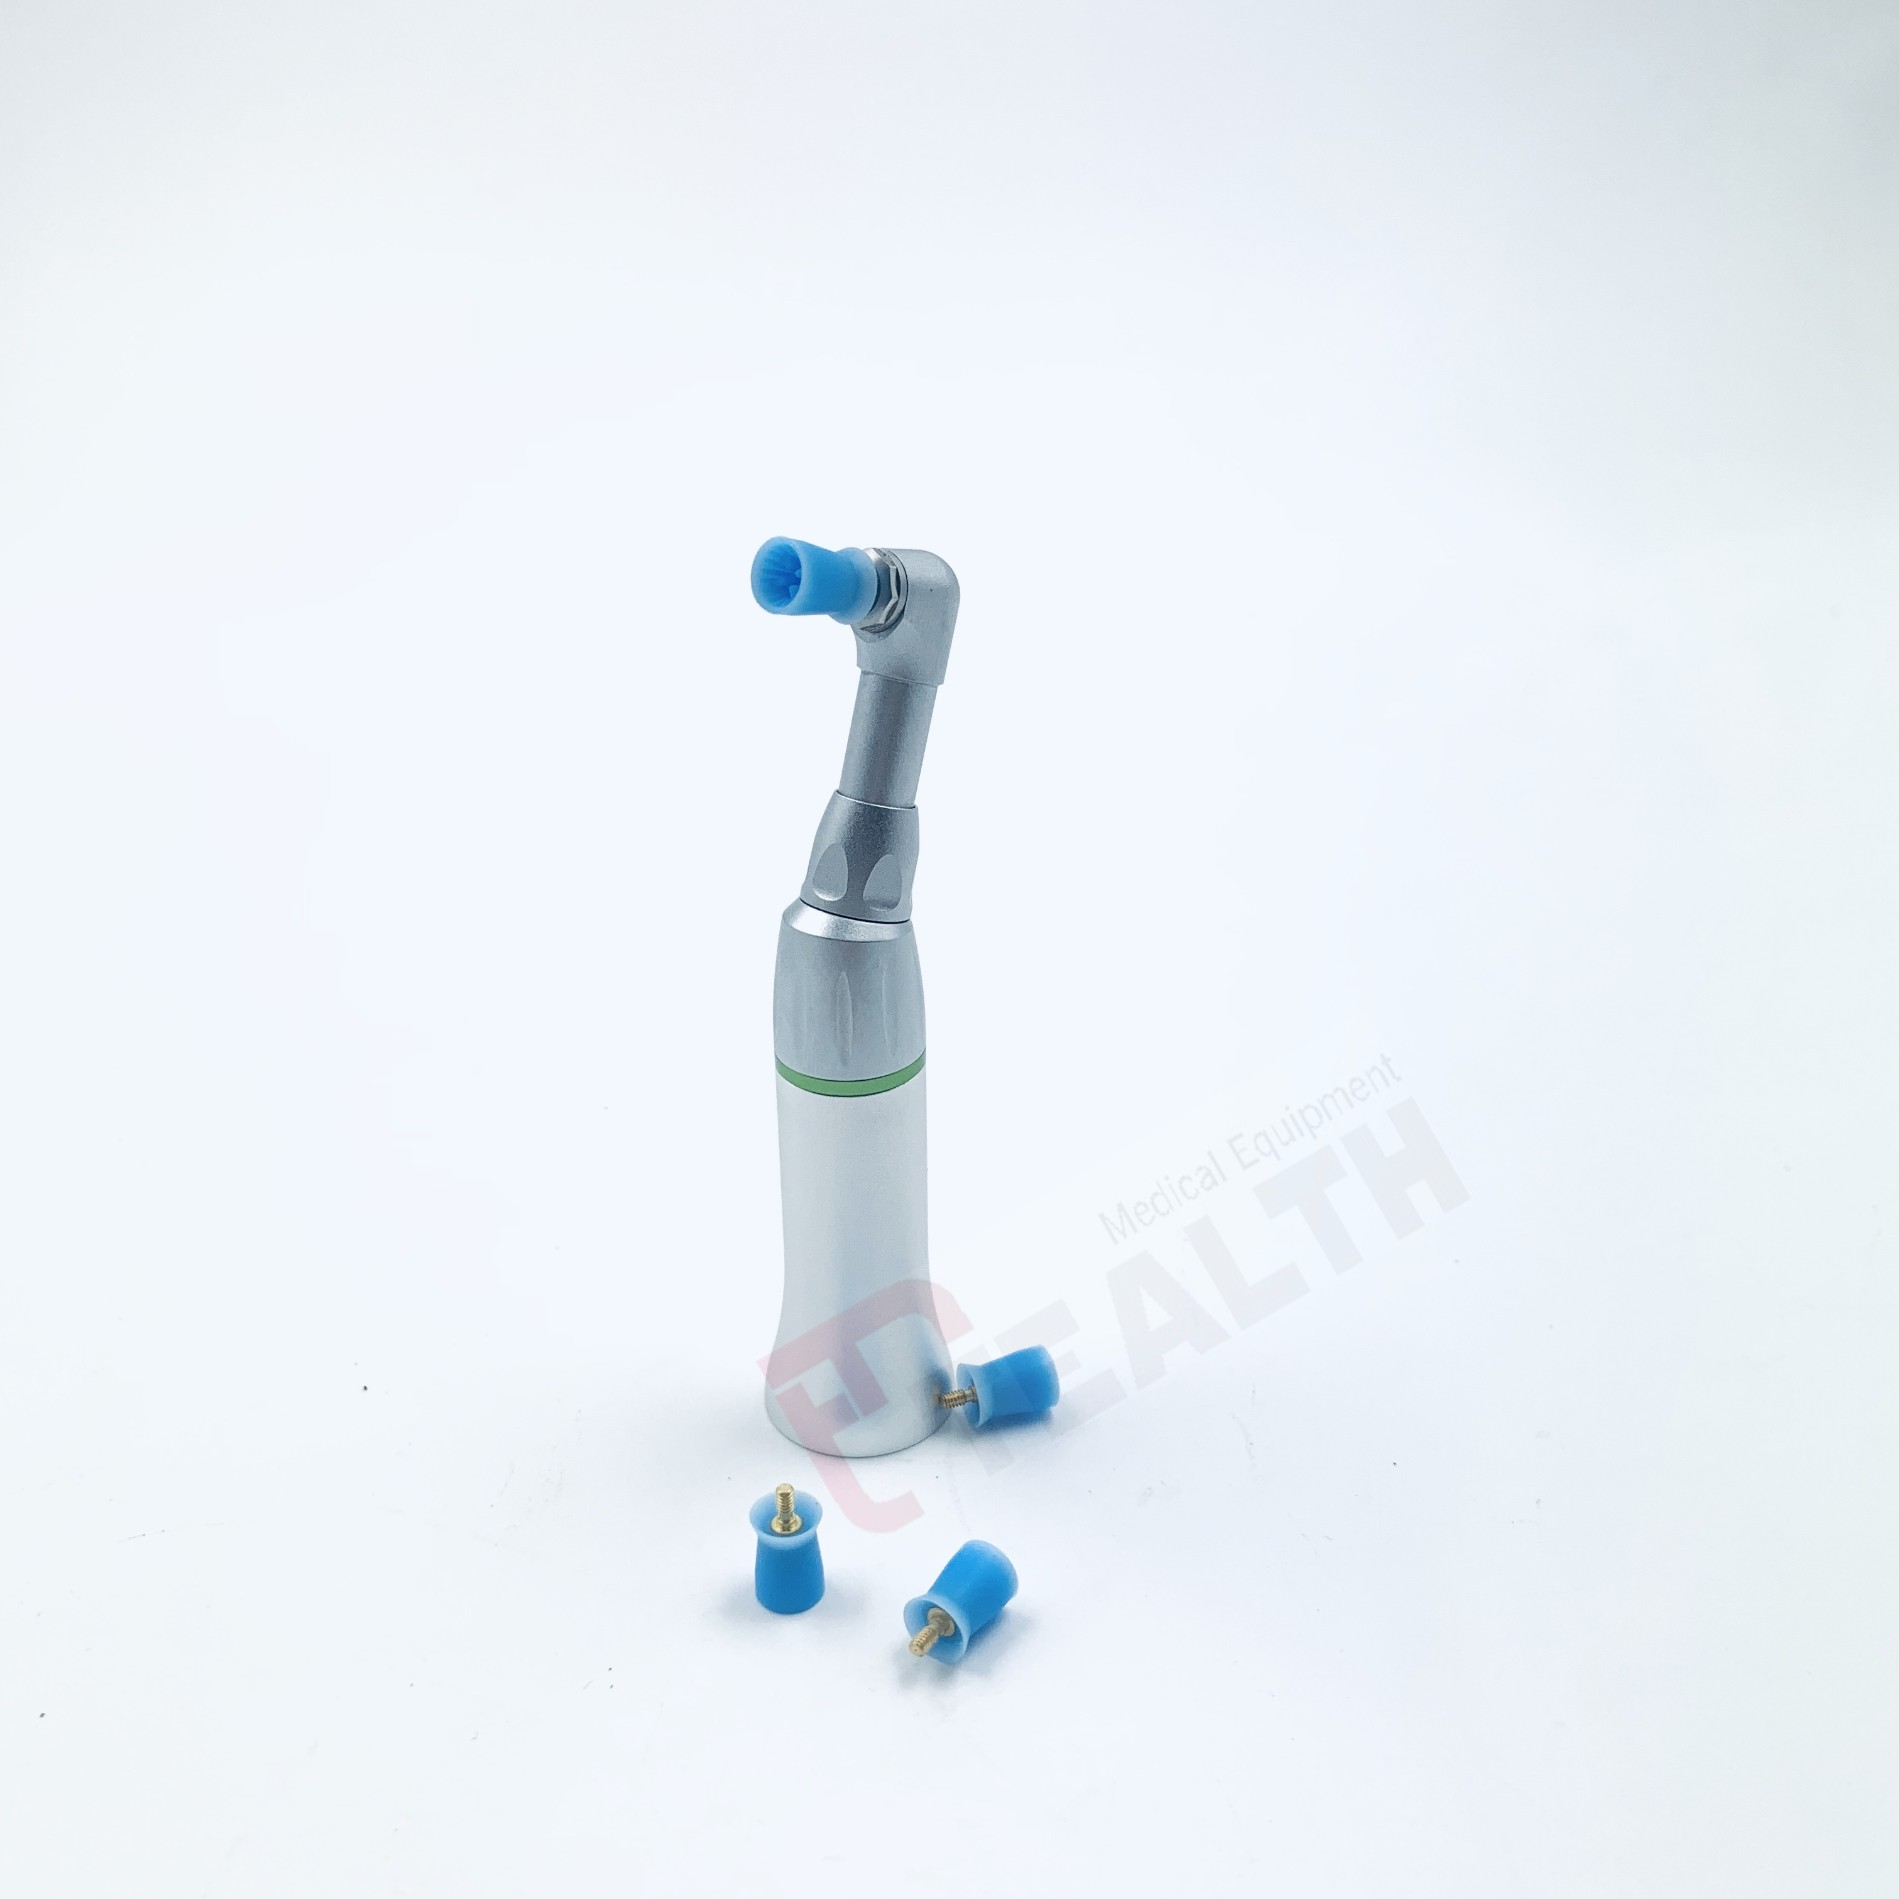 Tealth 4:1 reduction prophy screw type contra angle handpiece